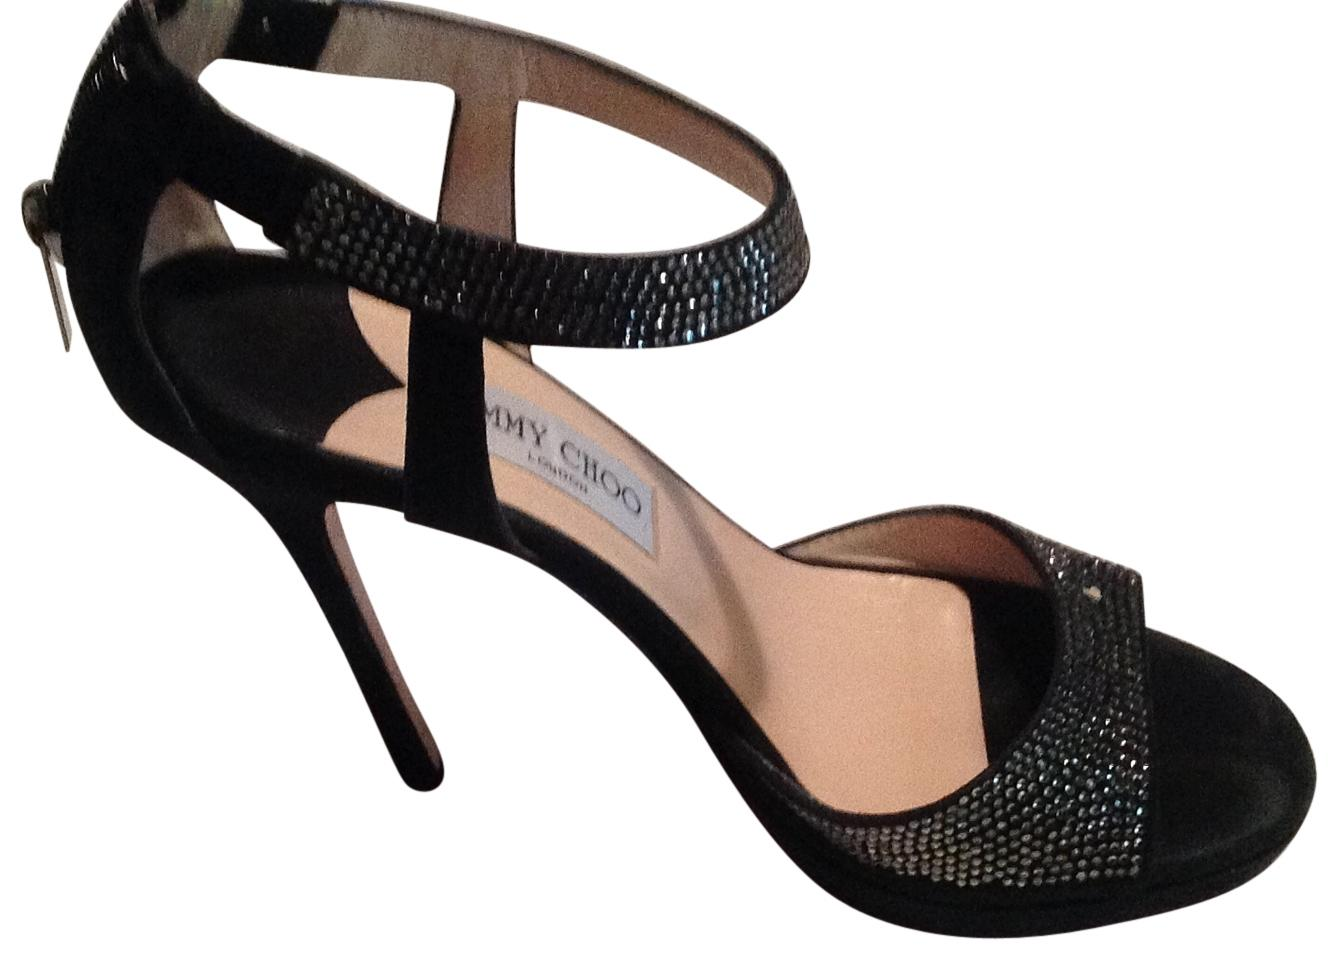 Jimmy Choo Black Strappy Sequin Sandals US 37.5 Formal Shoes Size US Sandals 7.5 832f75